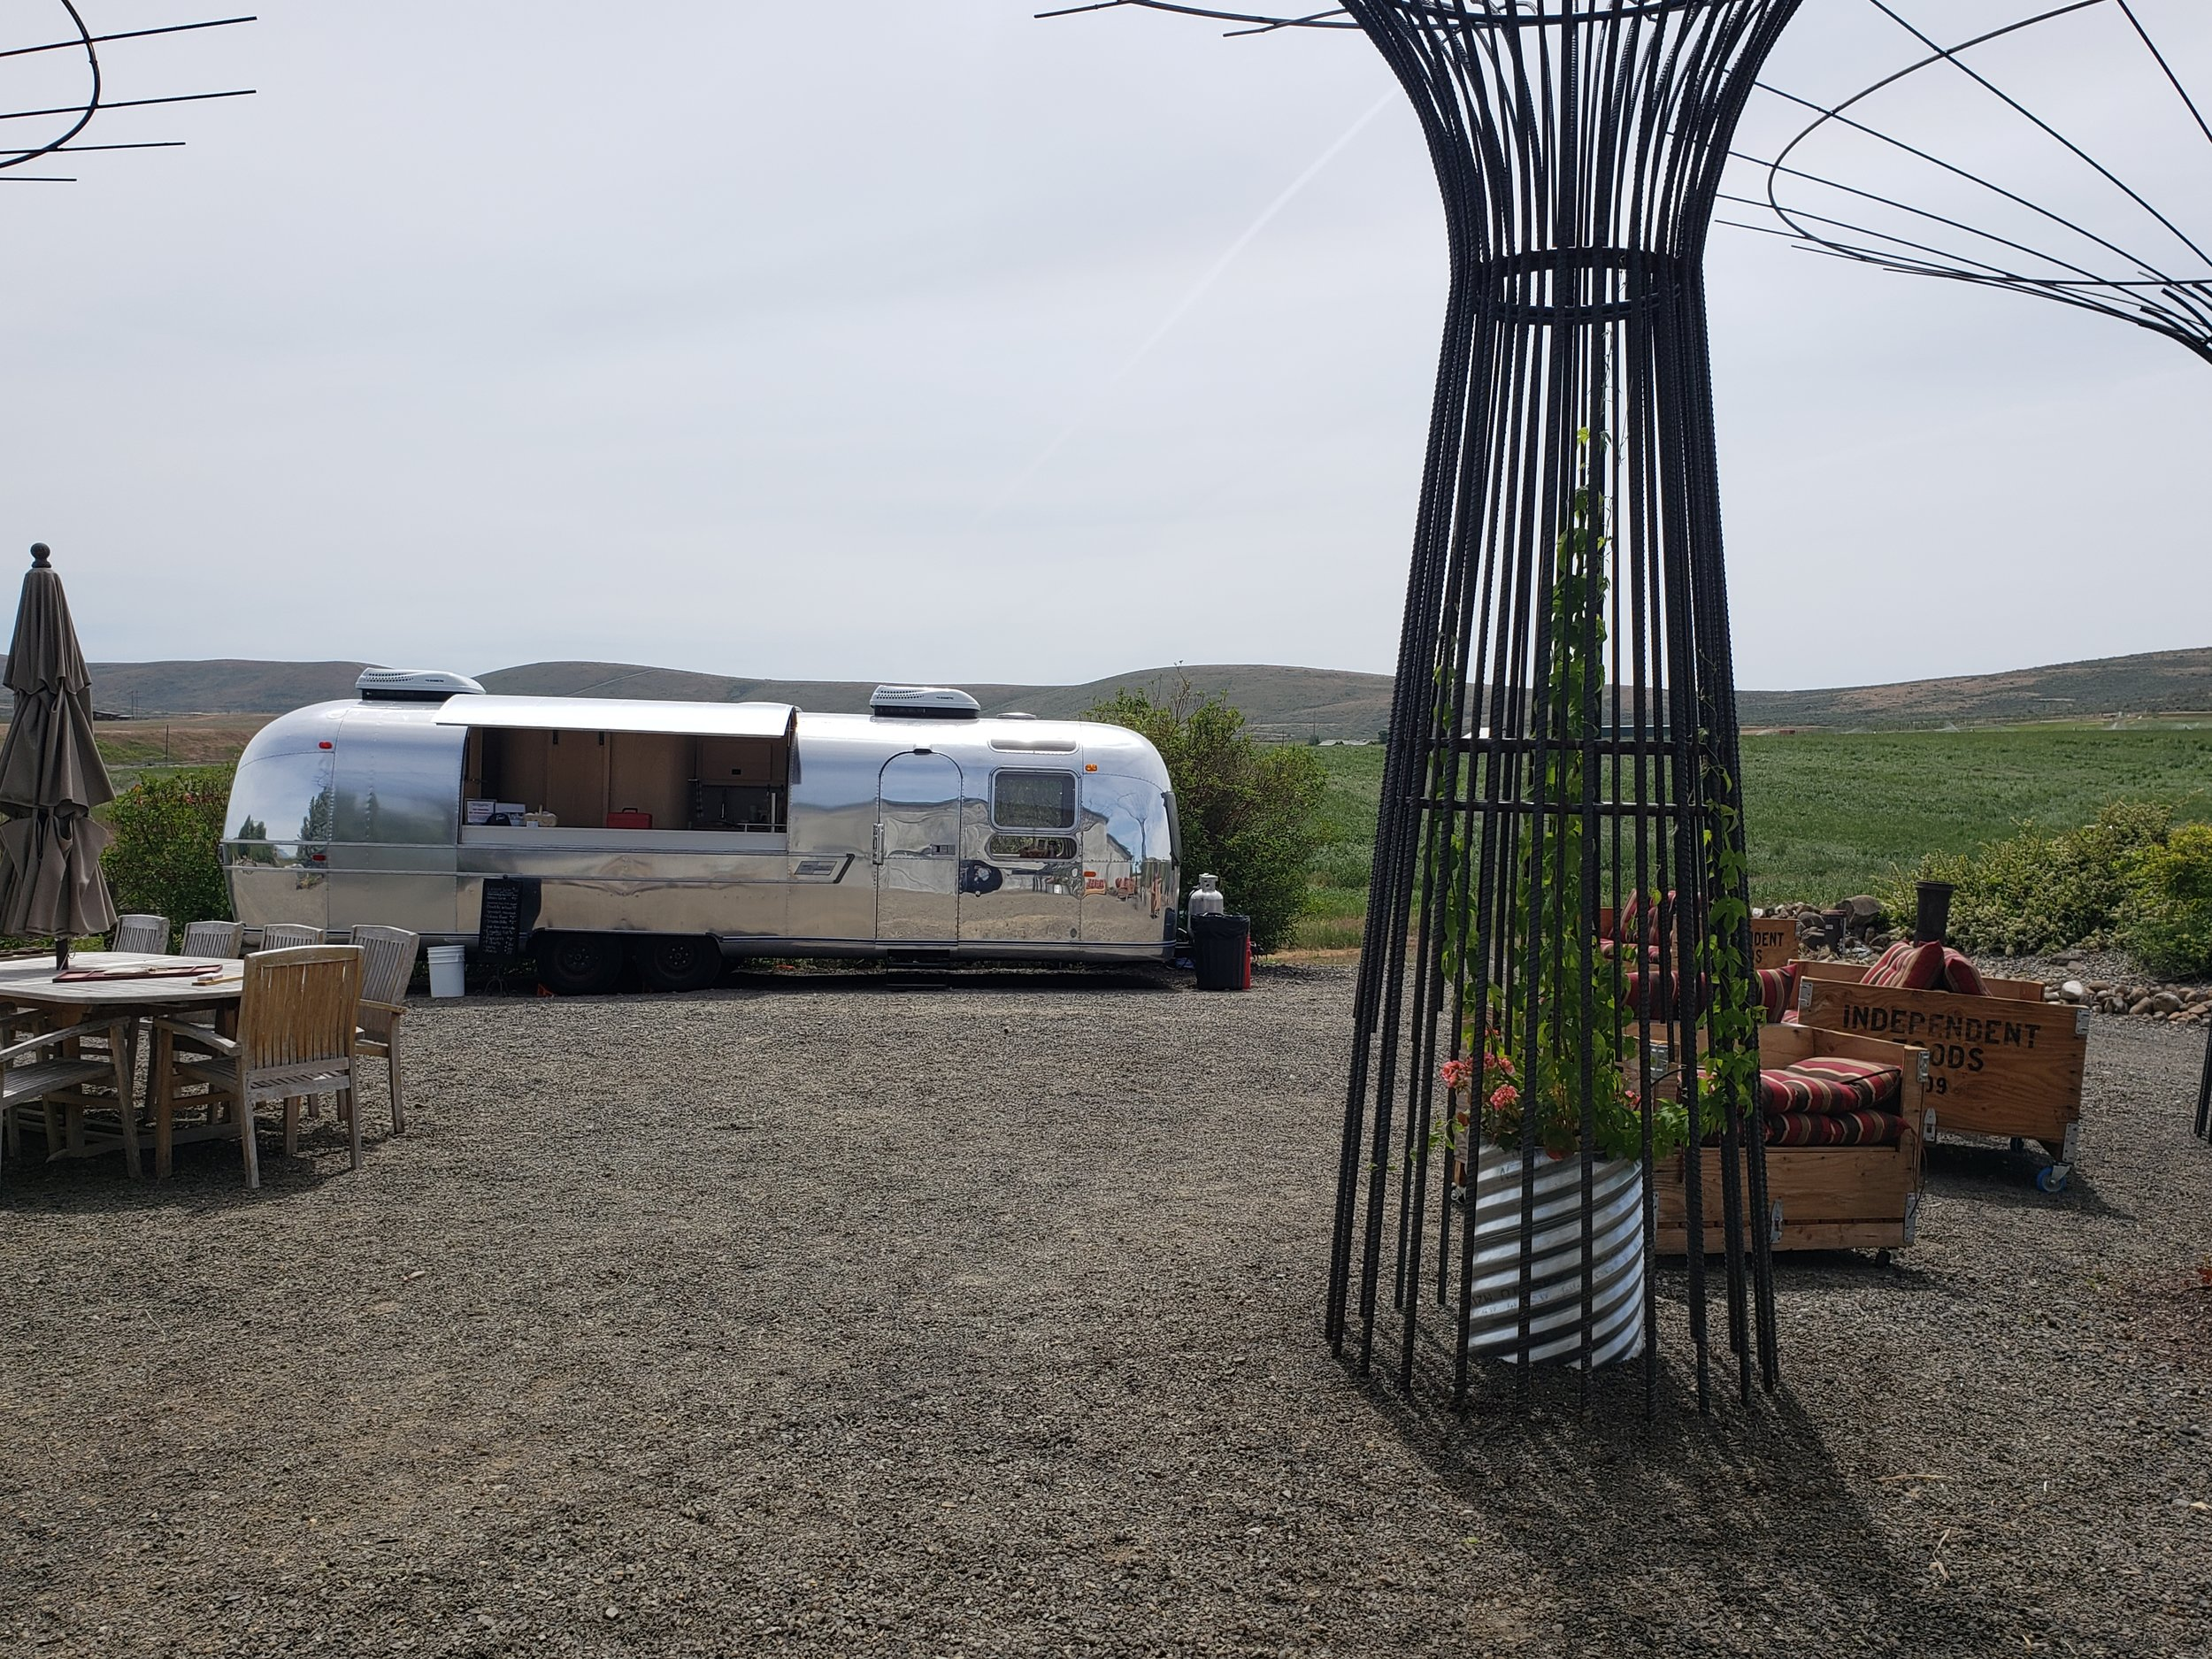 "Mobile cider ""Bullet"" bar - This 31' beauty has been restored and fitted with 4 taps! Enjoy country views while sipping on cider poured from our newest outdoor tasting room addition!"